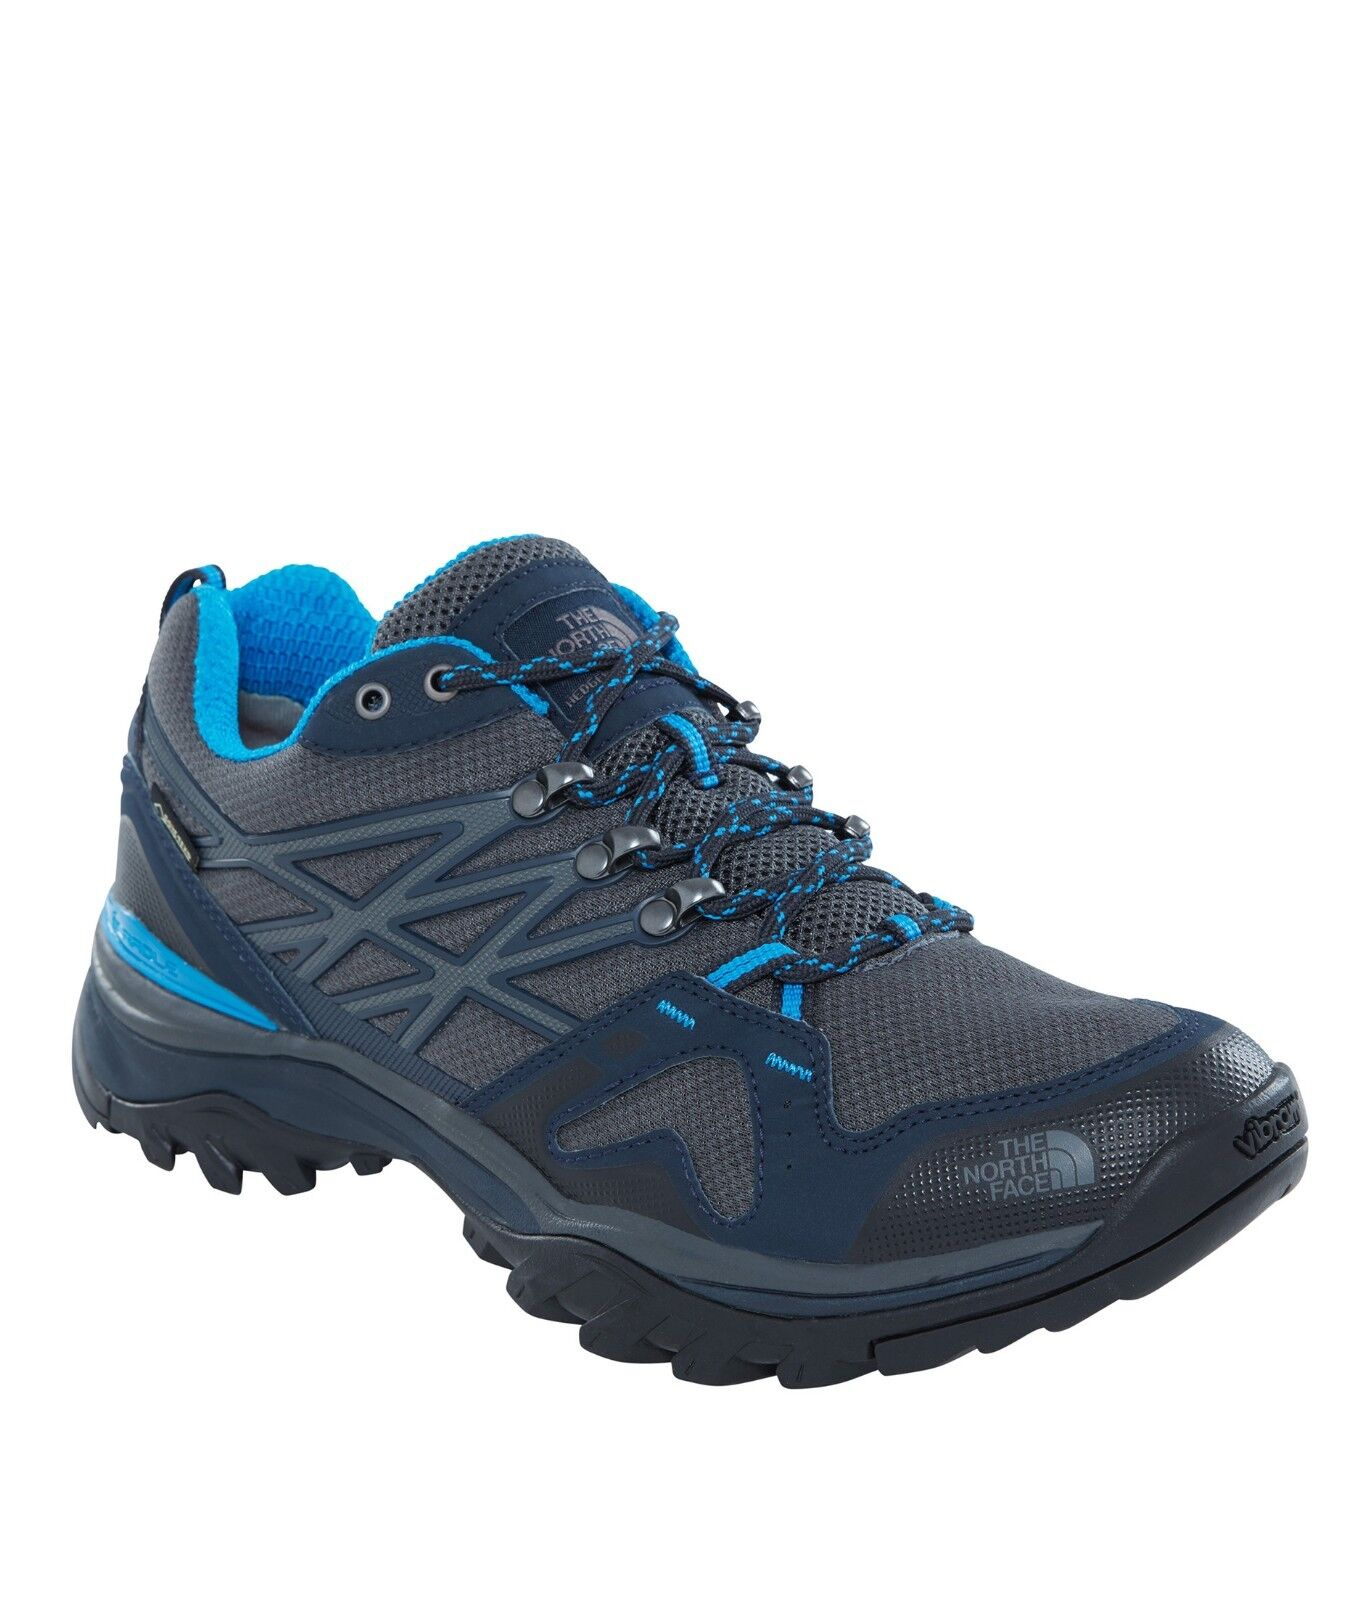 The hombre North Face M HEDGEHOG FASTPACK GTX Zapatos hombre The TREKKING HIKING CXT3 YTN 0f4e13